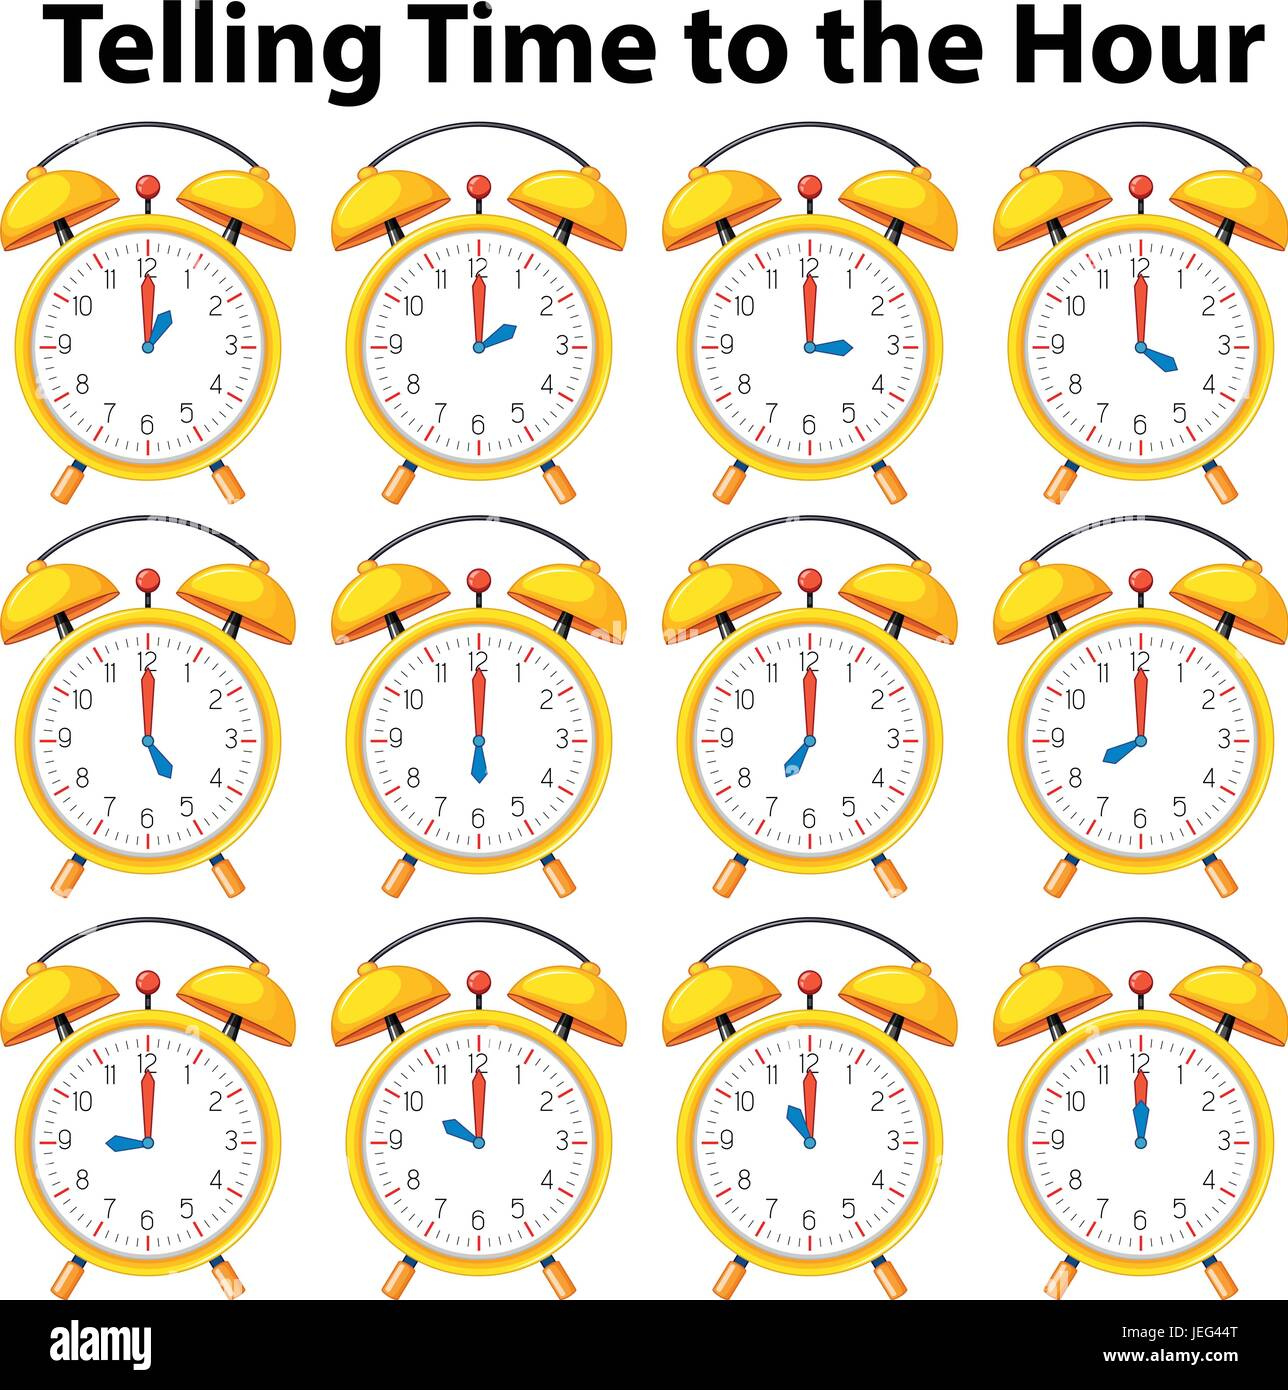 Telling time to the hour on yellow clock illustration ...